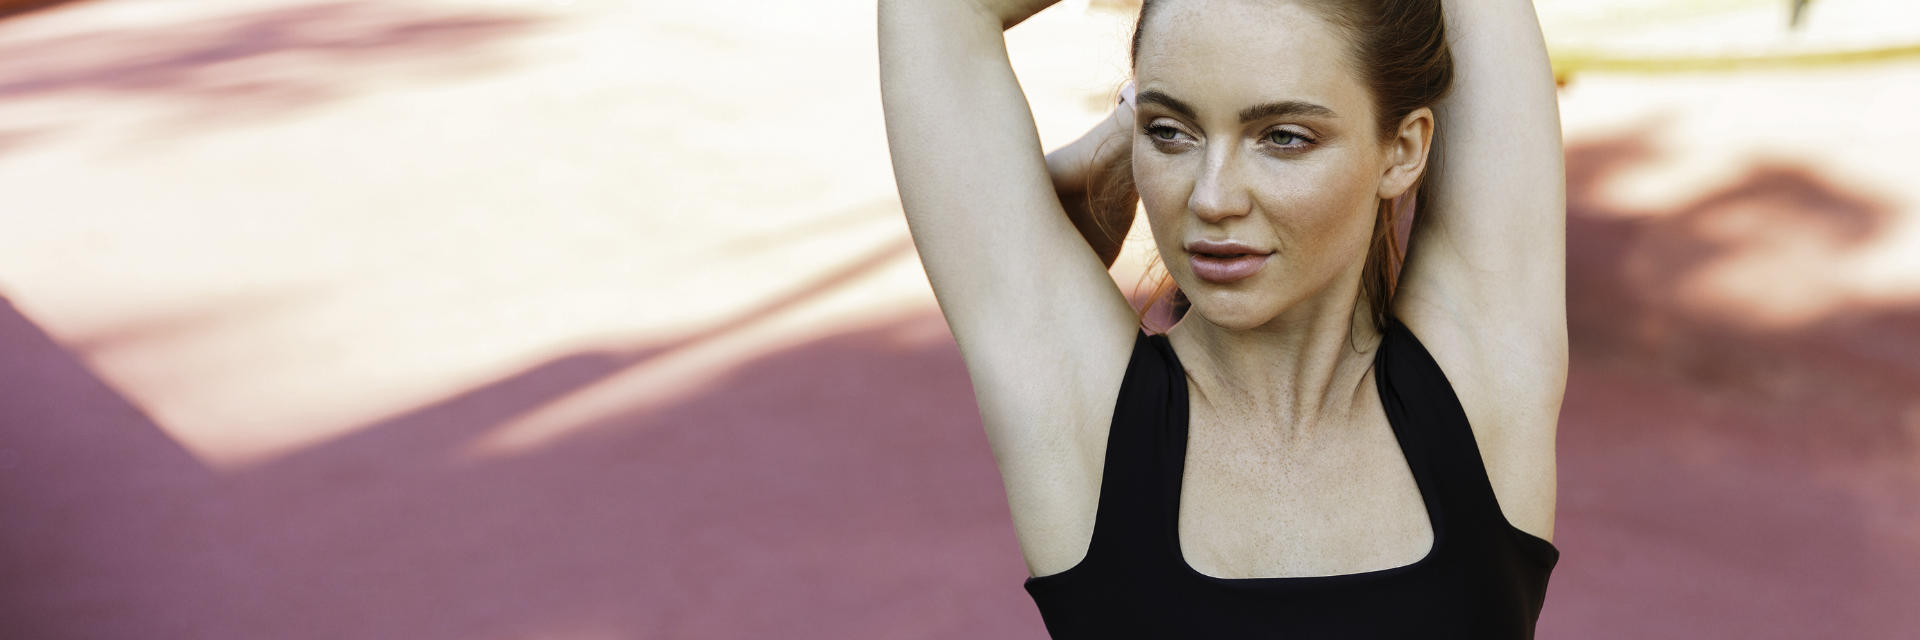 A sporty woman streaching her arms and shoulders.